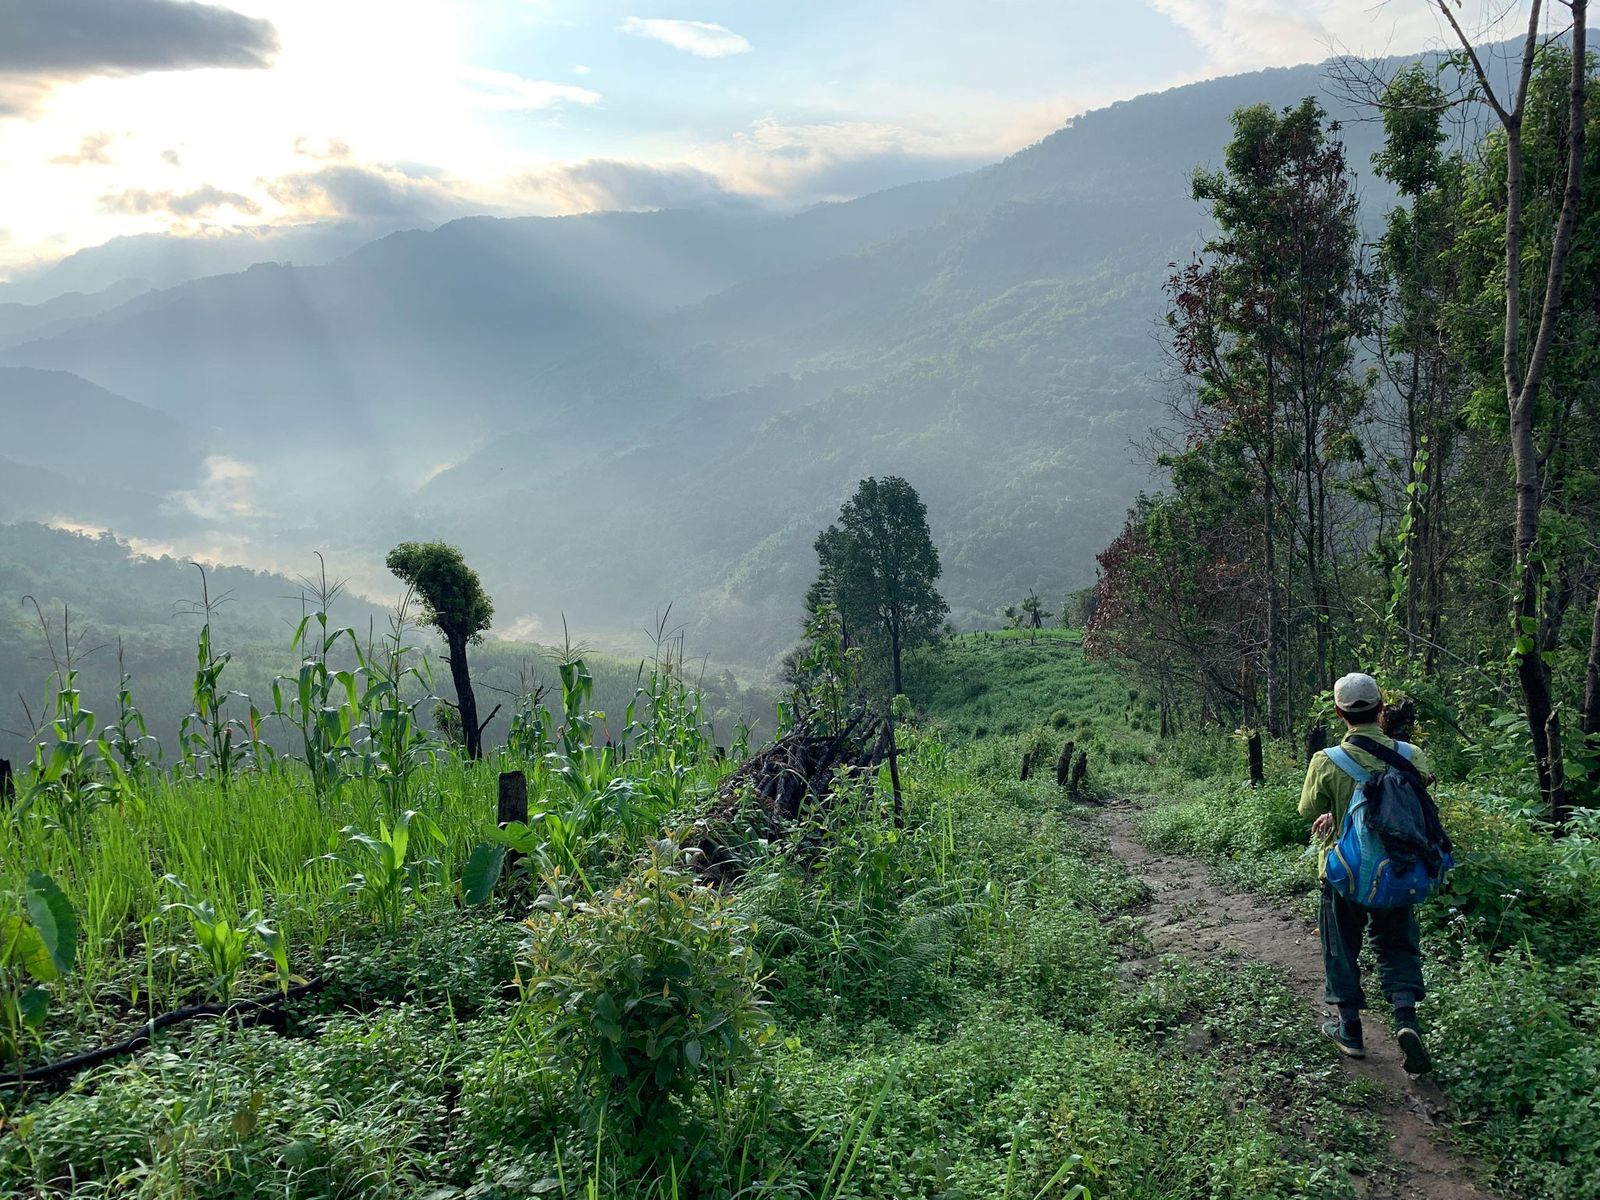 Outsiders don't venture into this lush corner of India. Could that change?